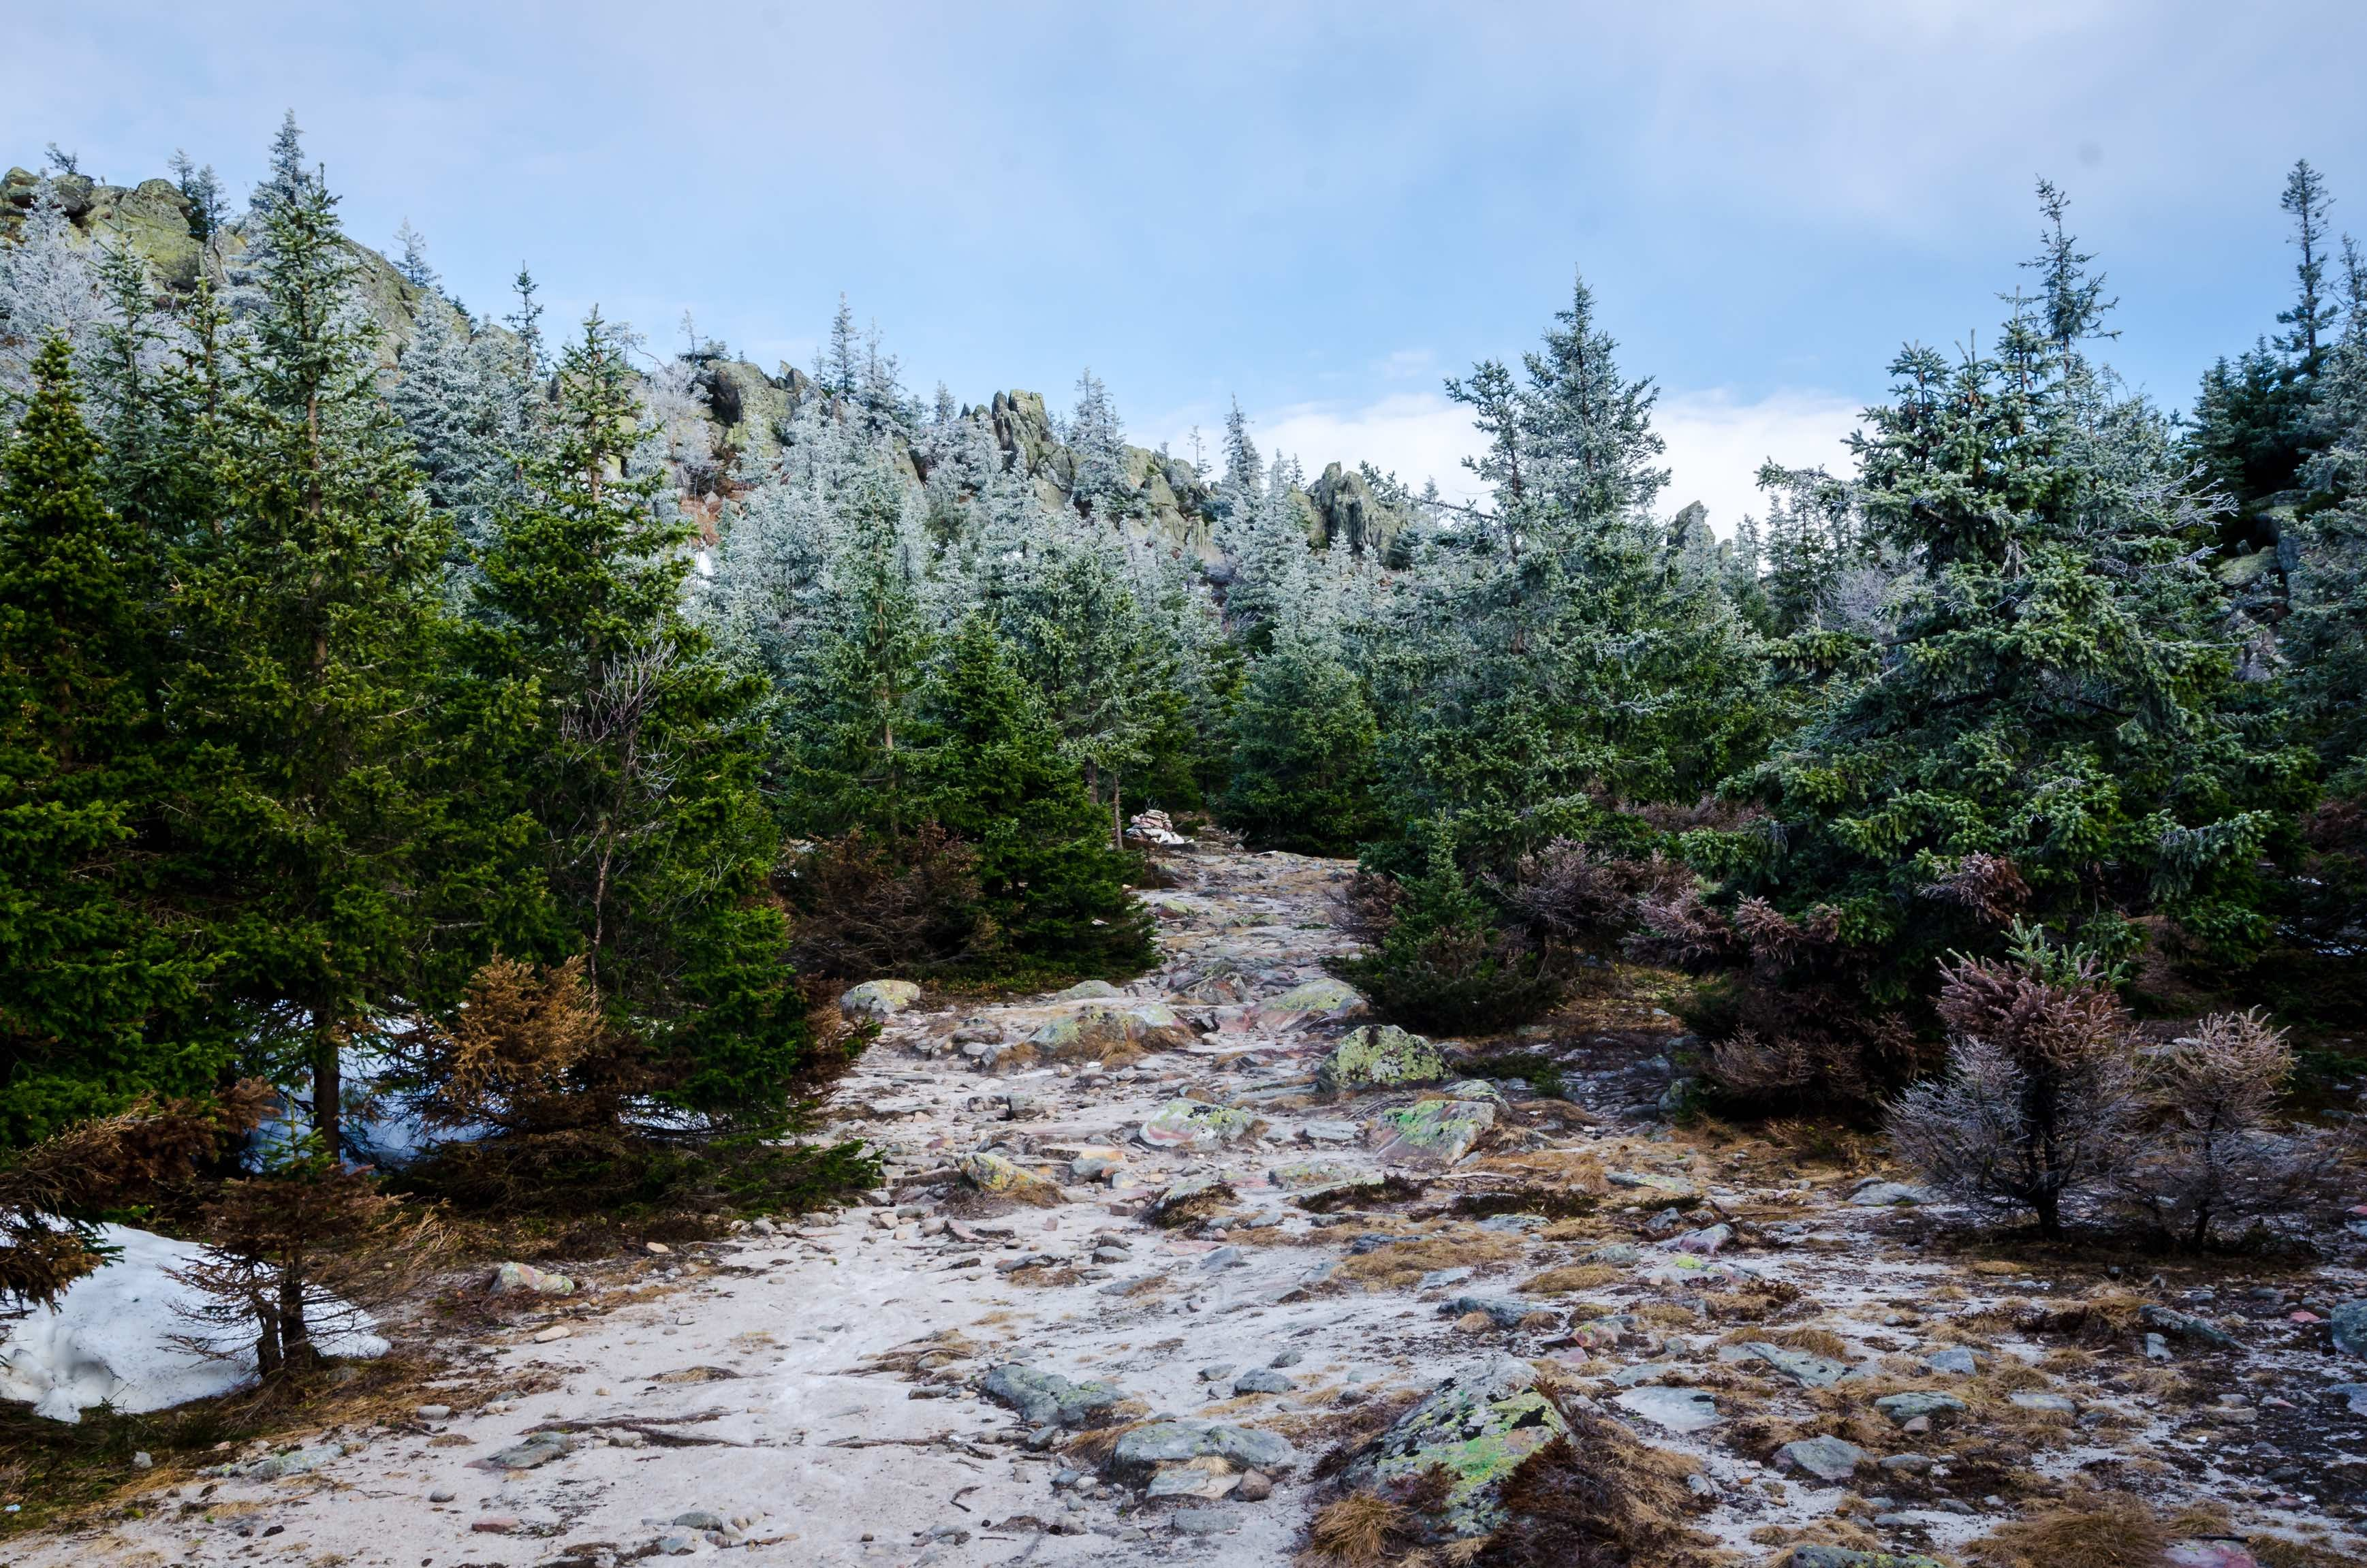 A light layer of snow covers a path leading up into a forest of evergreen trees